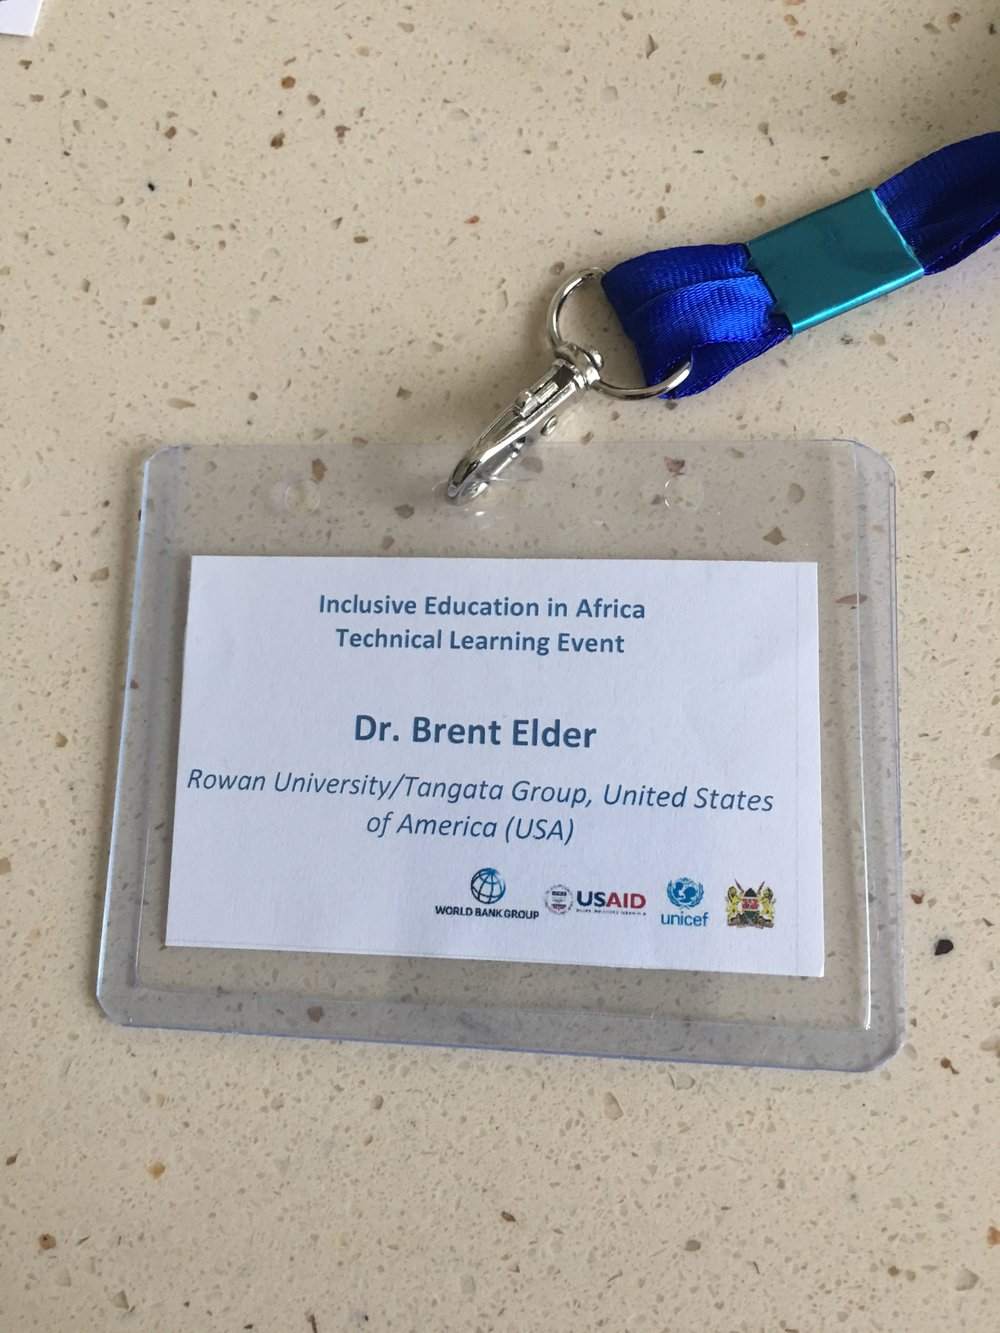 """Brent Elder's conference name tag that reads, """"Inclusive Education in Africa Inclusive Learning Event, Dr. Brent Elder, Rowan University/Tangata Group, United States of America"""" with the logos of the World Bank, USAID, UNICEF, and the Kenyan Ministry of Education."""